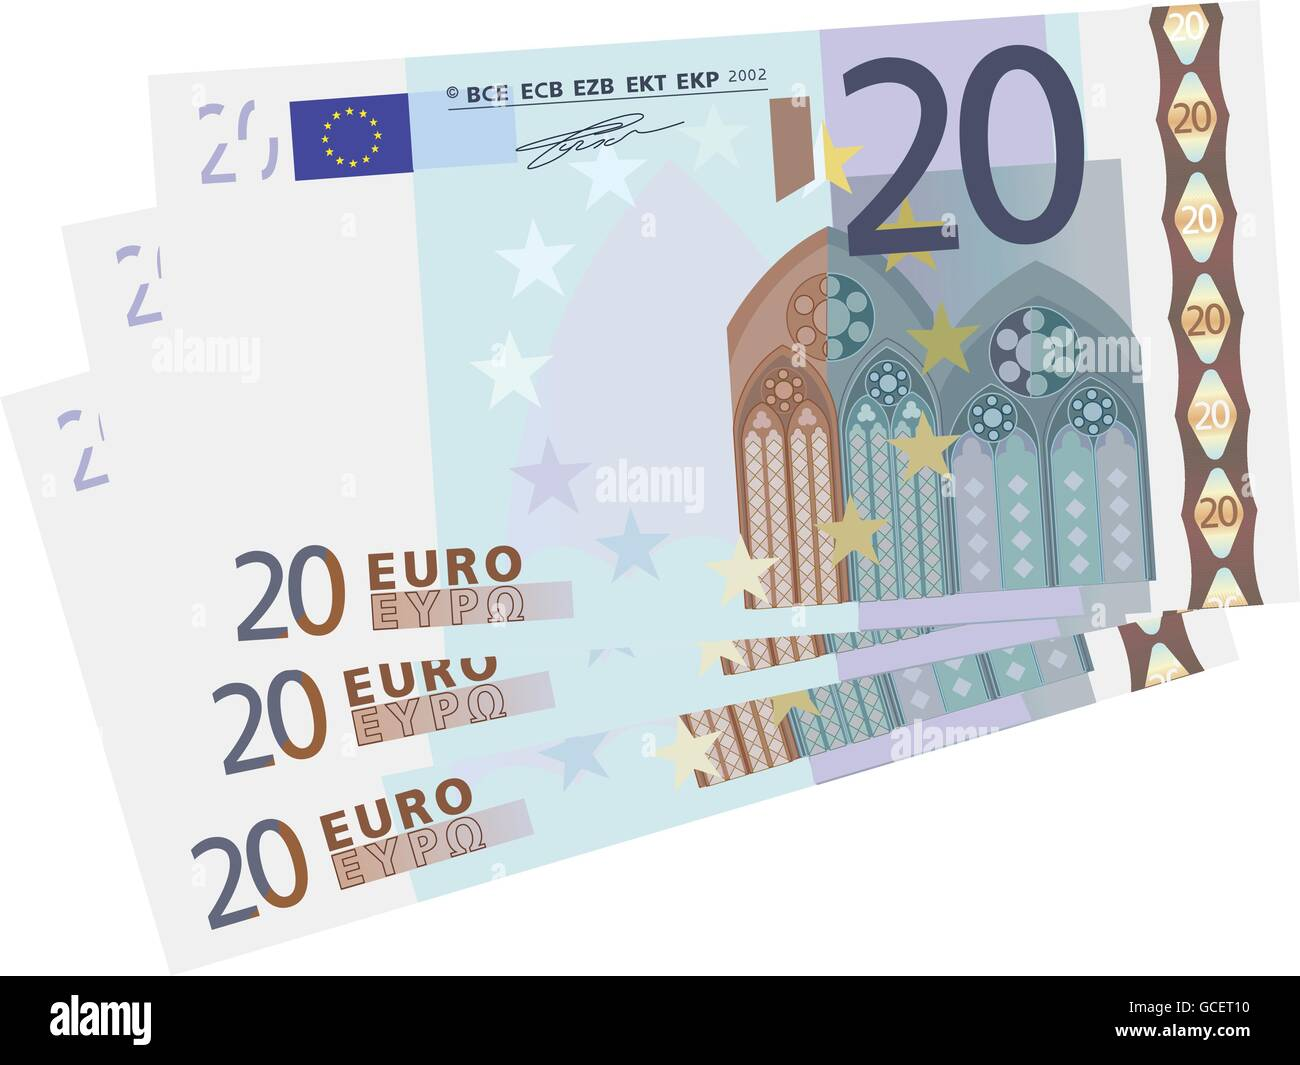 drawing of a 3x 20 Euro bills simplified - Stock Vector